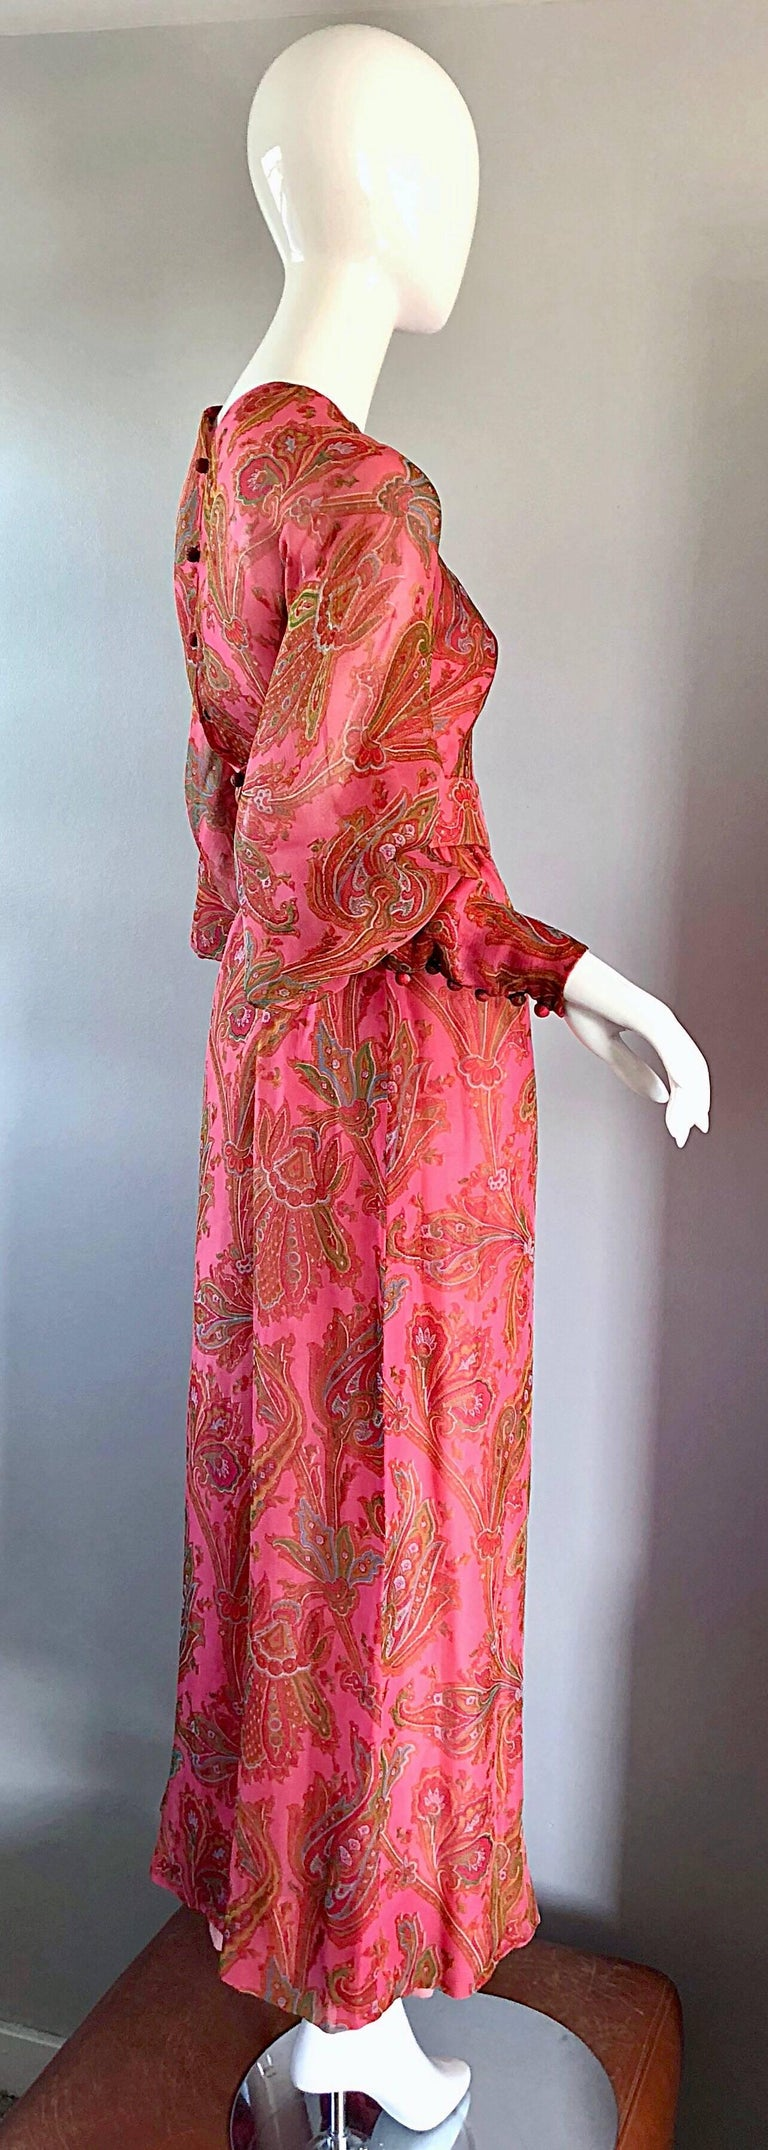 Adele Simpson 1970s Pink Silk Chiffon Paisley Bishop Sleeve Vintage Maxi Dress For Sale 3